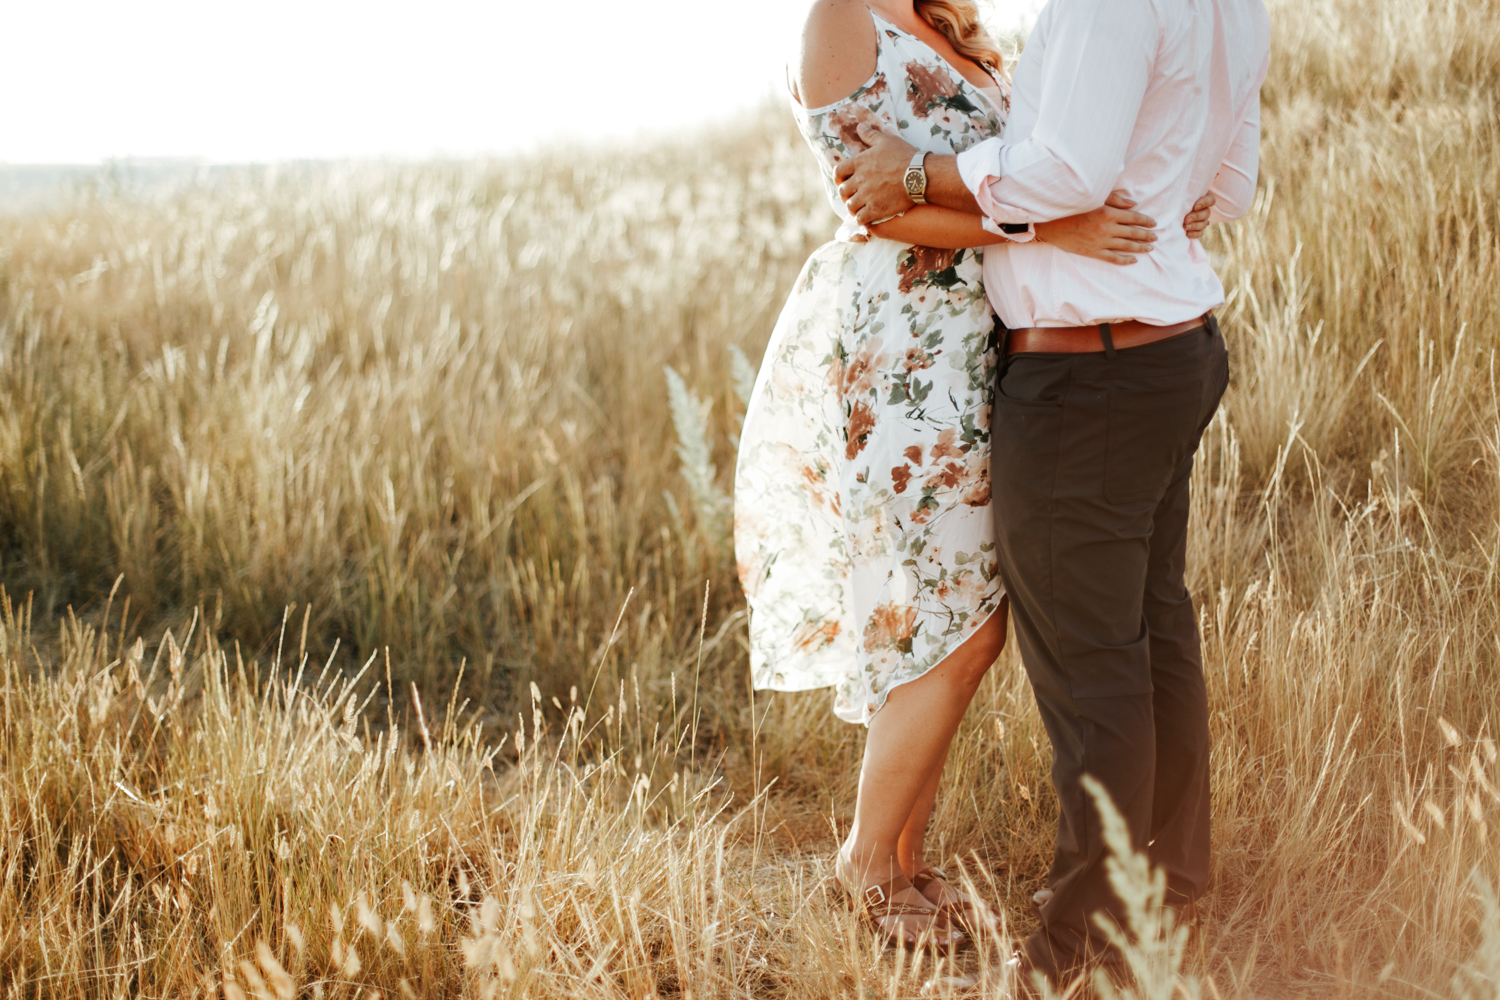 lethbridge-wedding-photographer-love-and-be-loved-photography-katie-kelli-engagement-picture-image-photo-11.jpg